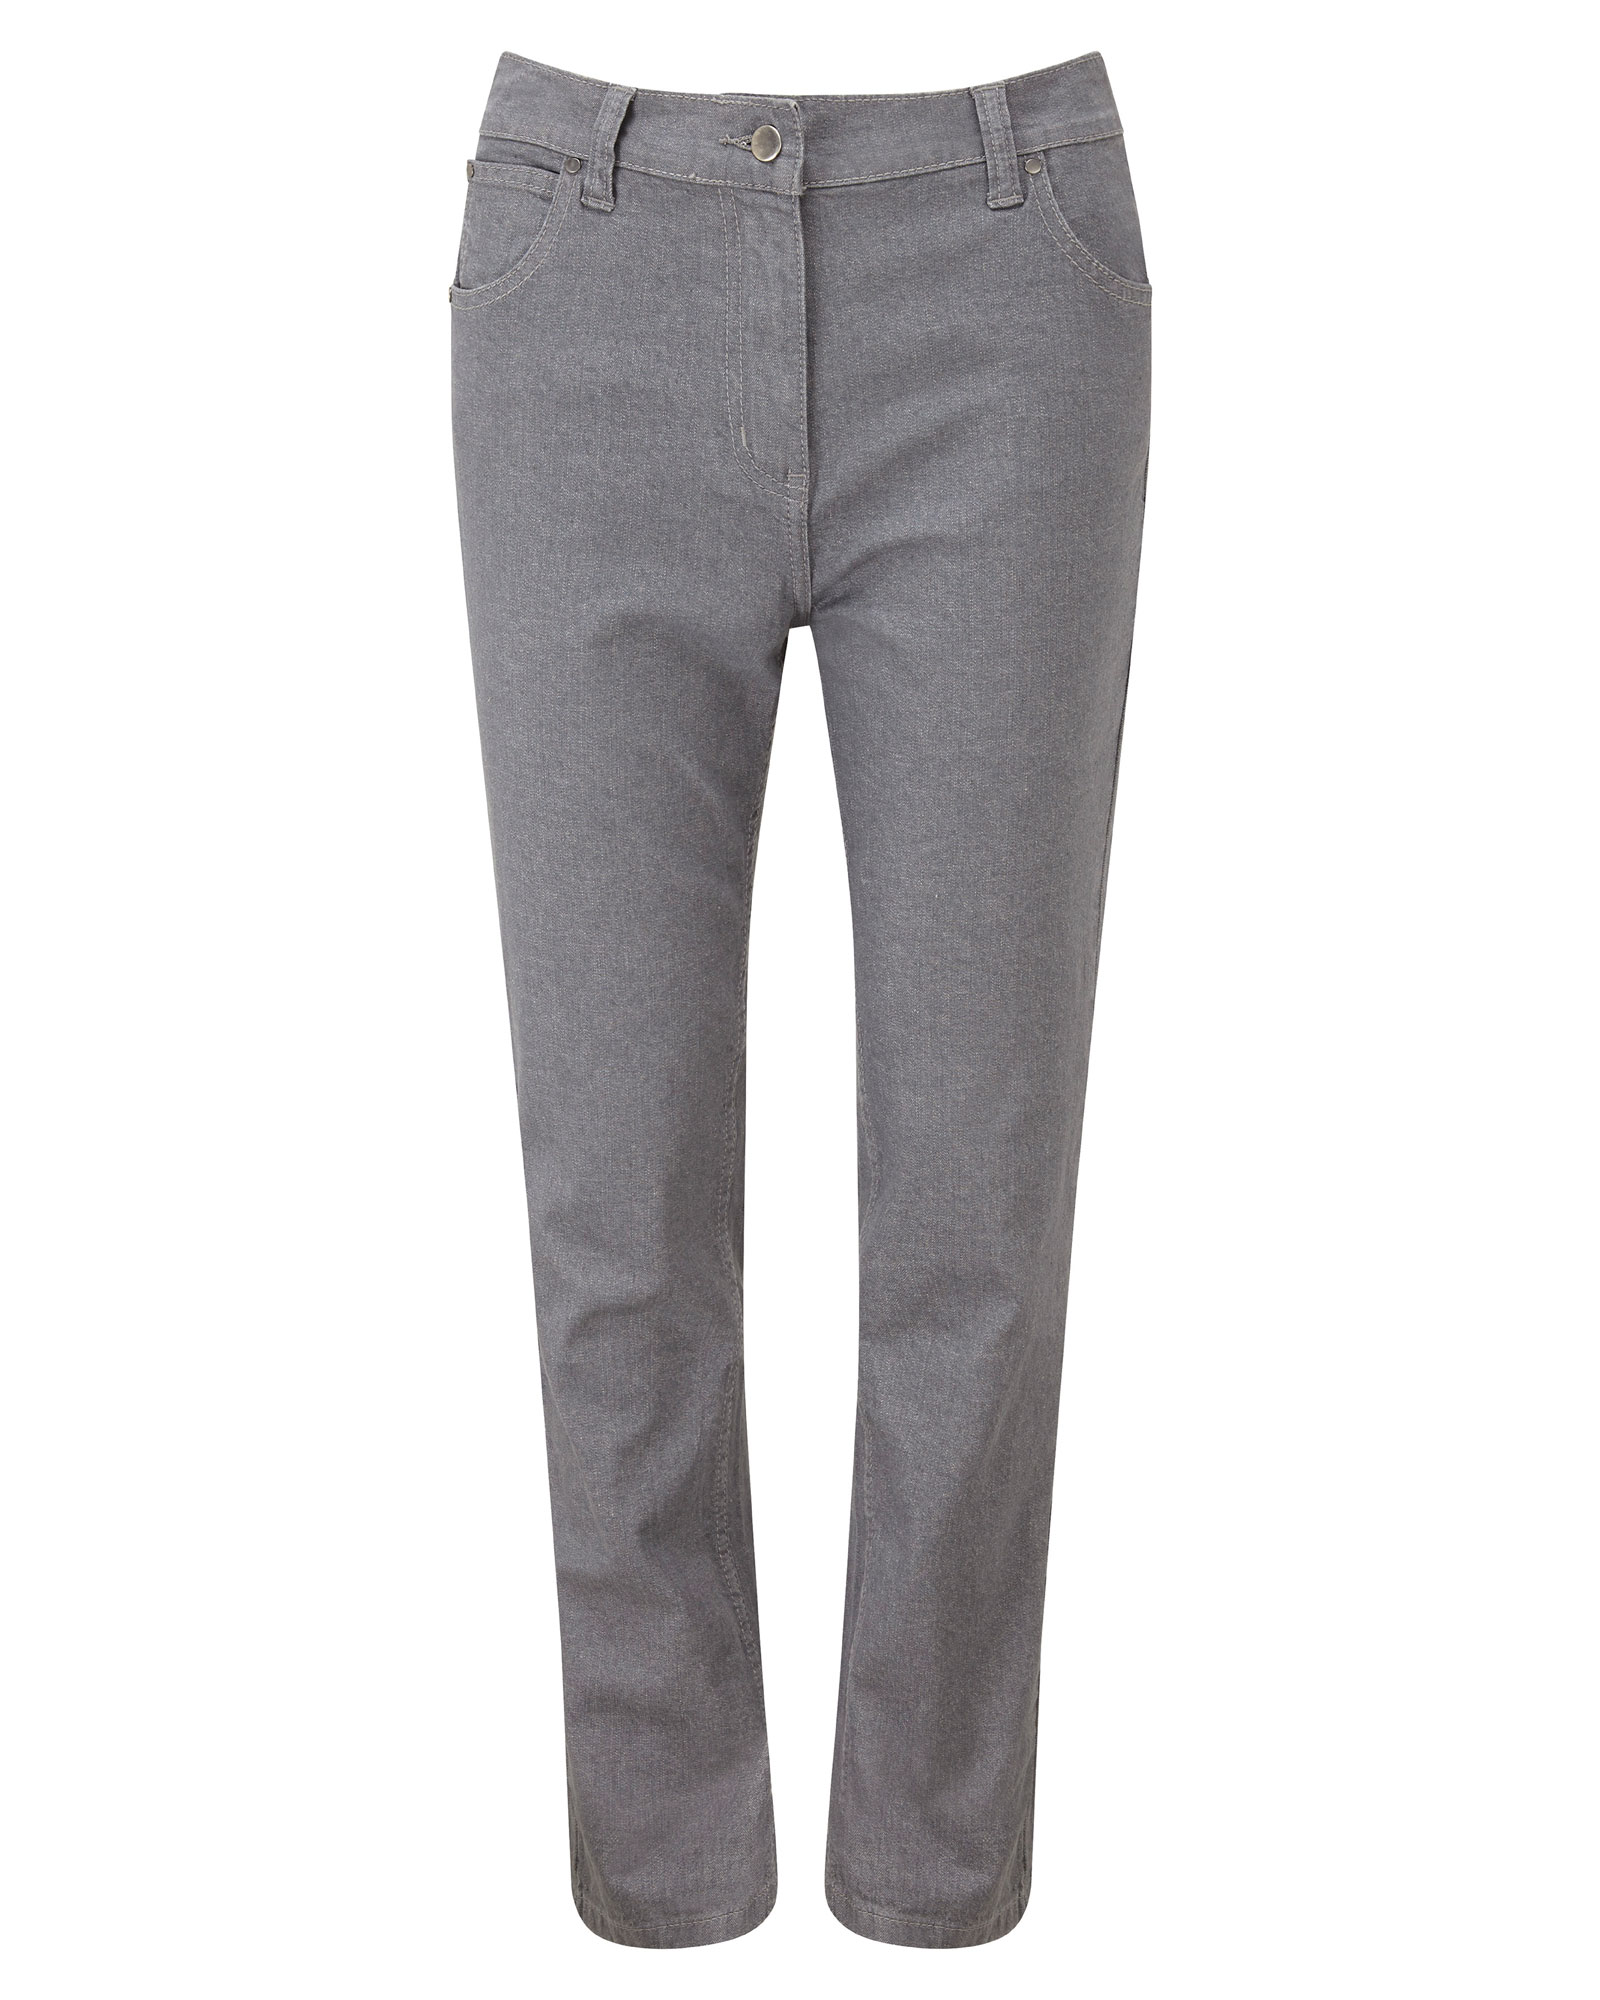 Cotton Traders Women's Classic Stretch Jeans in Grey